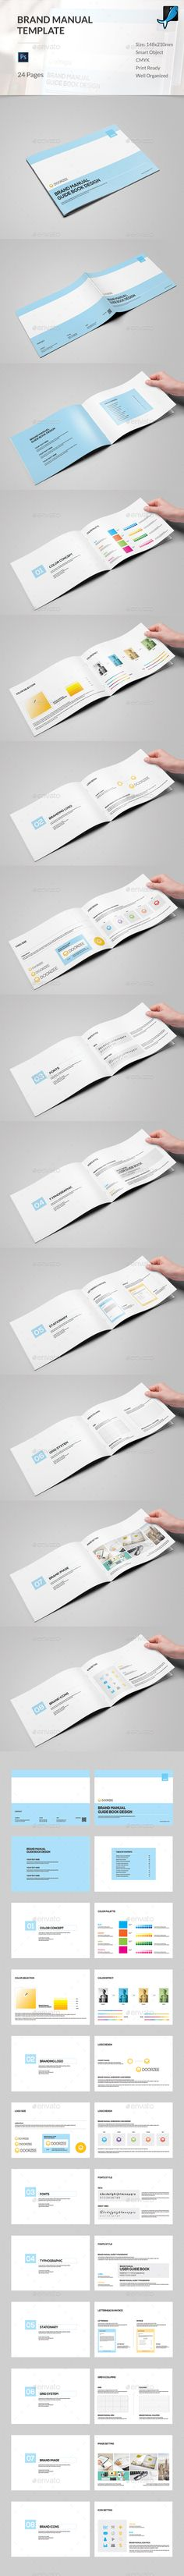 Brand Manual  Brand Manual Indesign Templates And Annual Reports